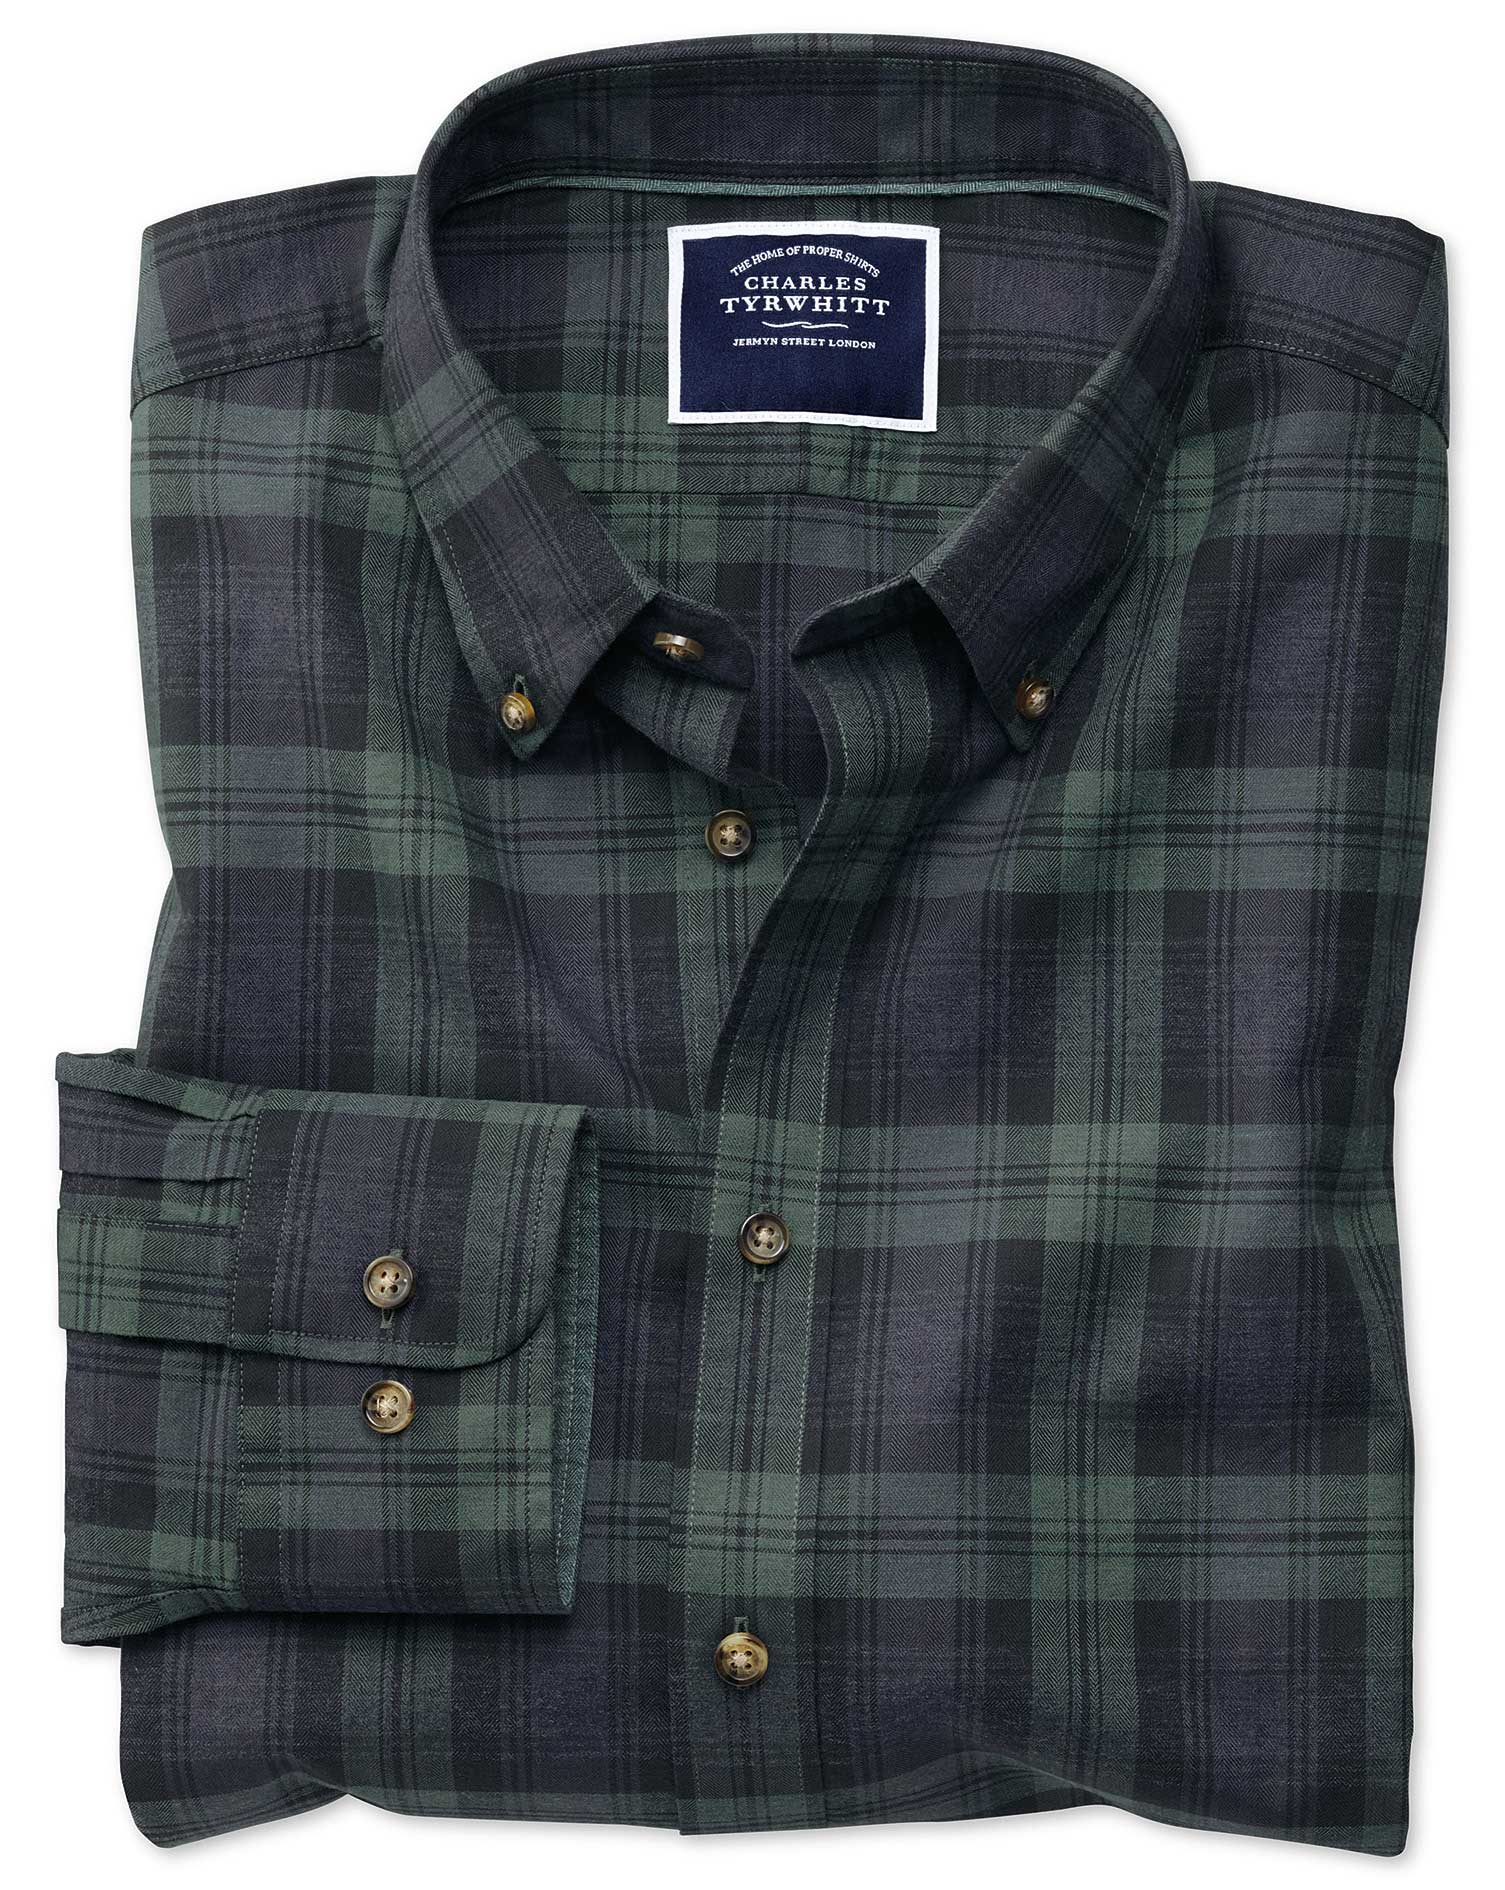 Extra Slim Fit Navy and Green Check Herringbone Melange Cotton Shirt Single Cuff Size Small by Charl